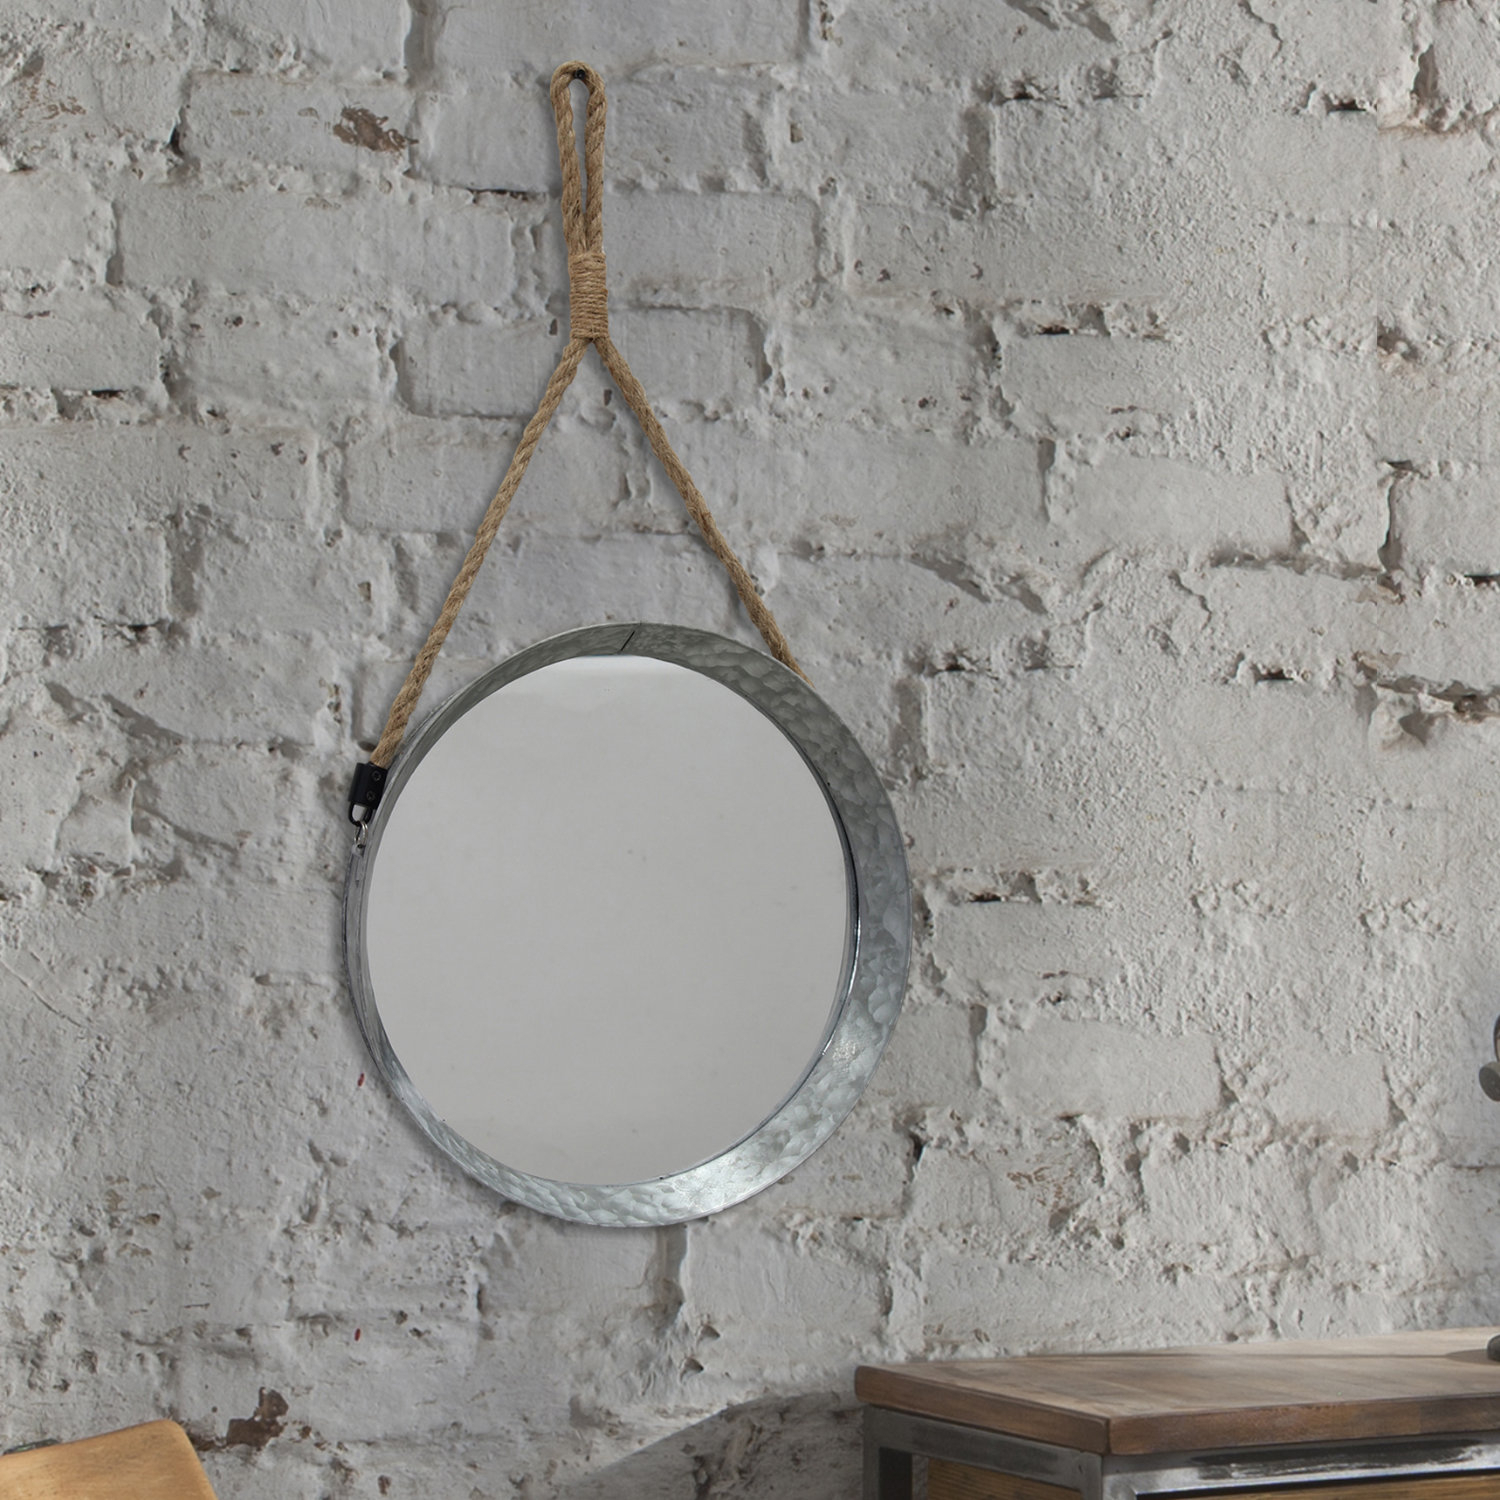 Donna Suspended Galvanized Accent Wall Mirror Pertaining To Round Galvanized Metallic Wall Mirrors (Gallery 18 of 30)